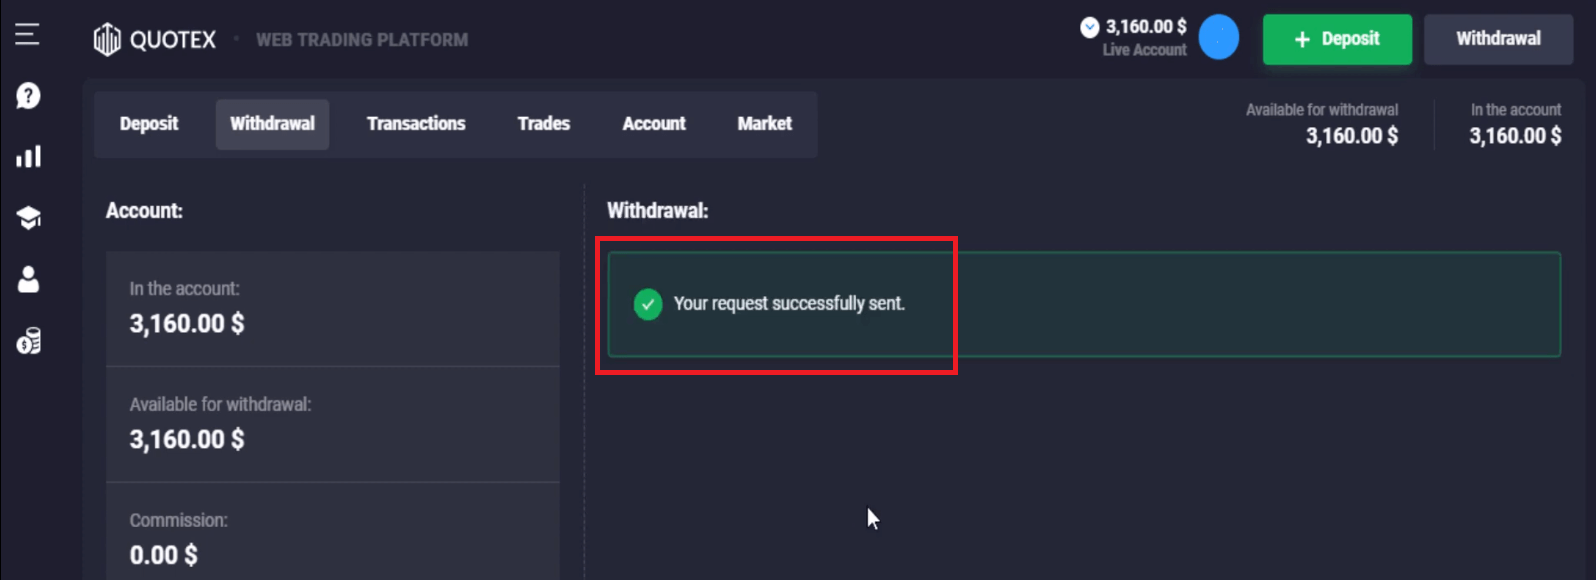 Frequently Asked Question (FAQ) of Trading in Quotex